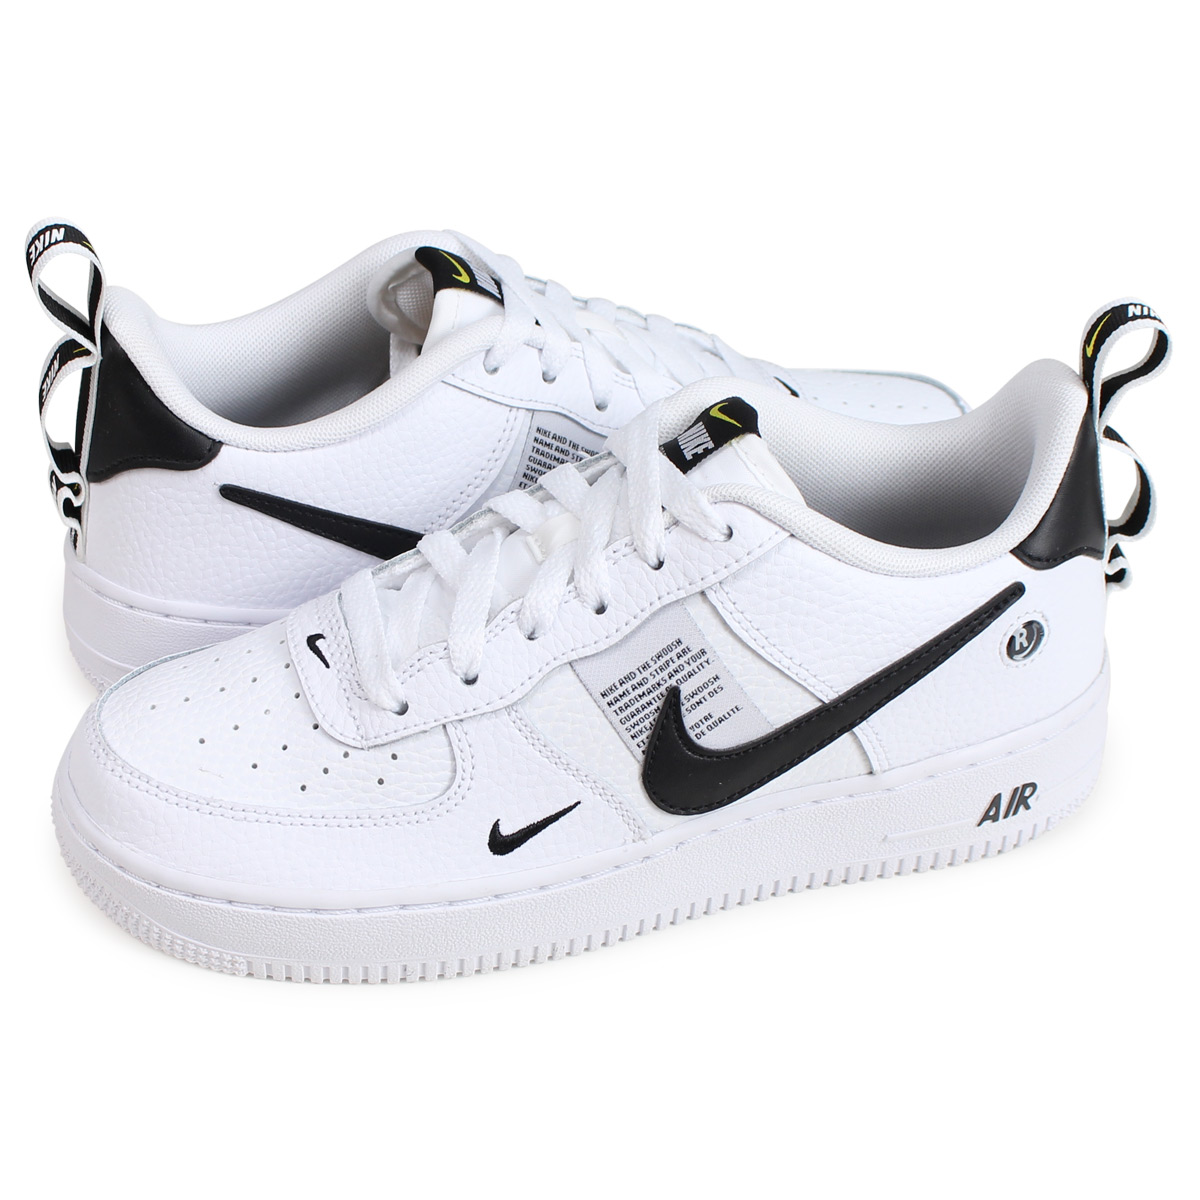 Nike NIKE air force 1 lady's sneakers AIR FORCE 1 LV8 UTILITY GS white AR1708 100 [load planned Shinnyu load in reservation product 1210 containing]